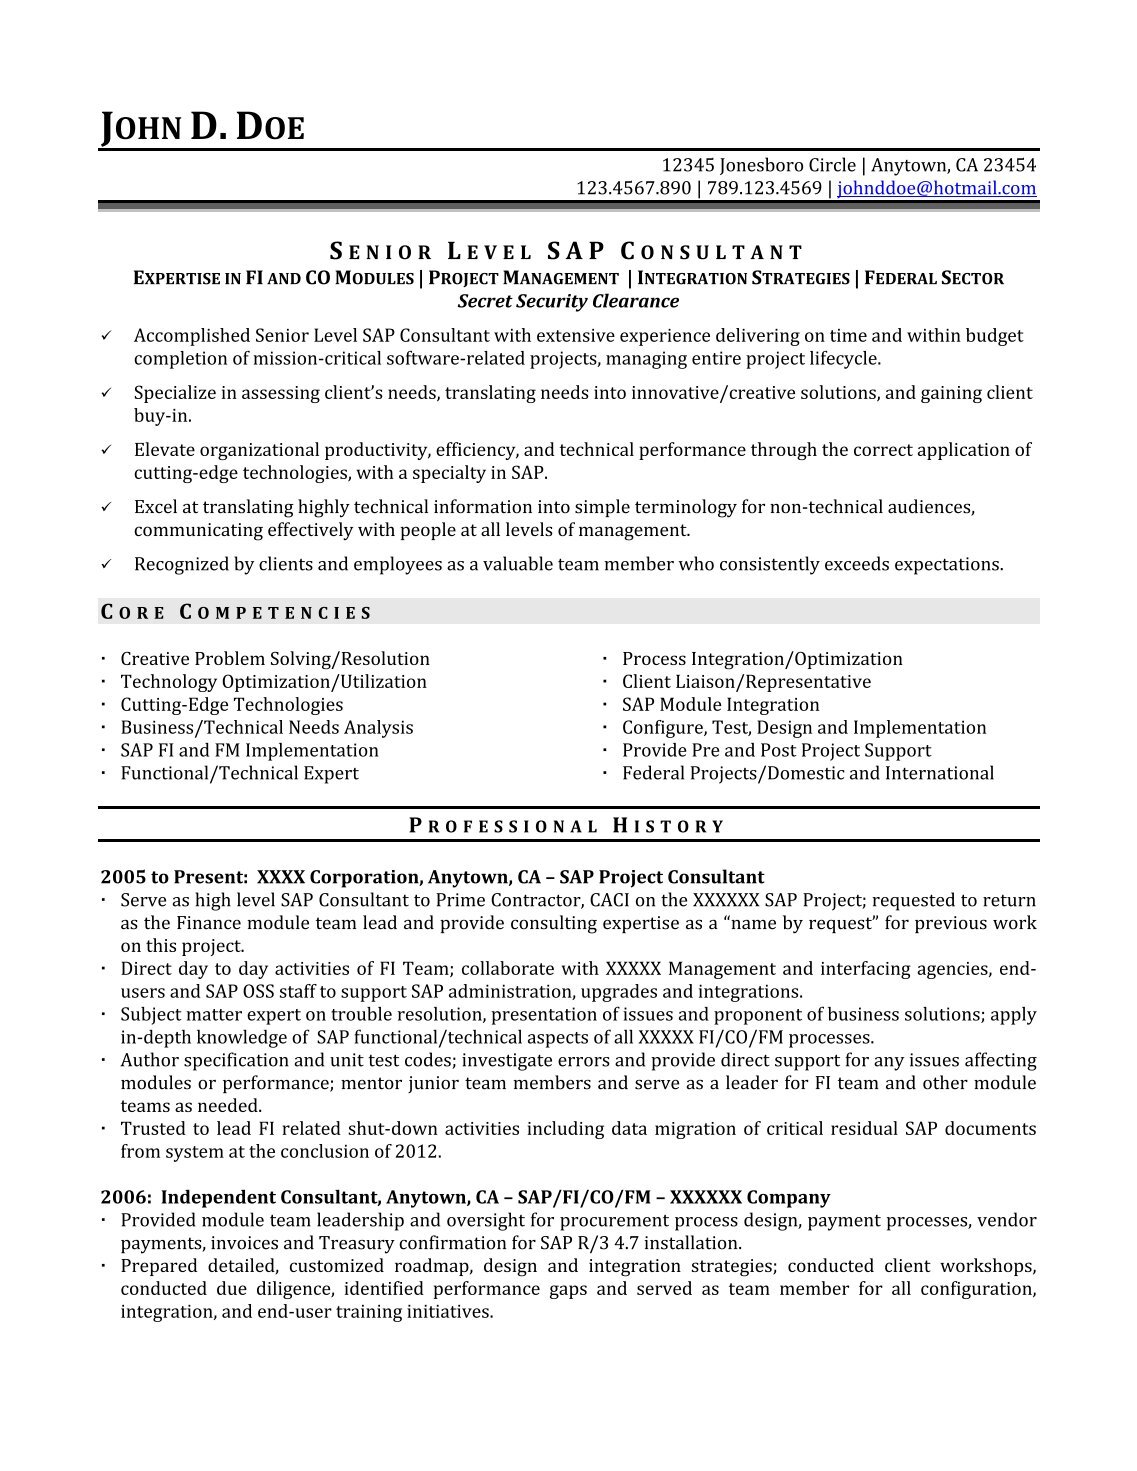 5 free magazines from storeylineresumes com for Sample resume for sap fico consultant